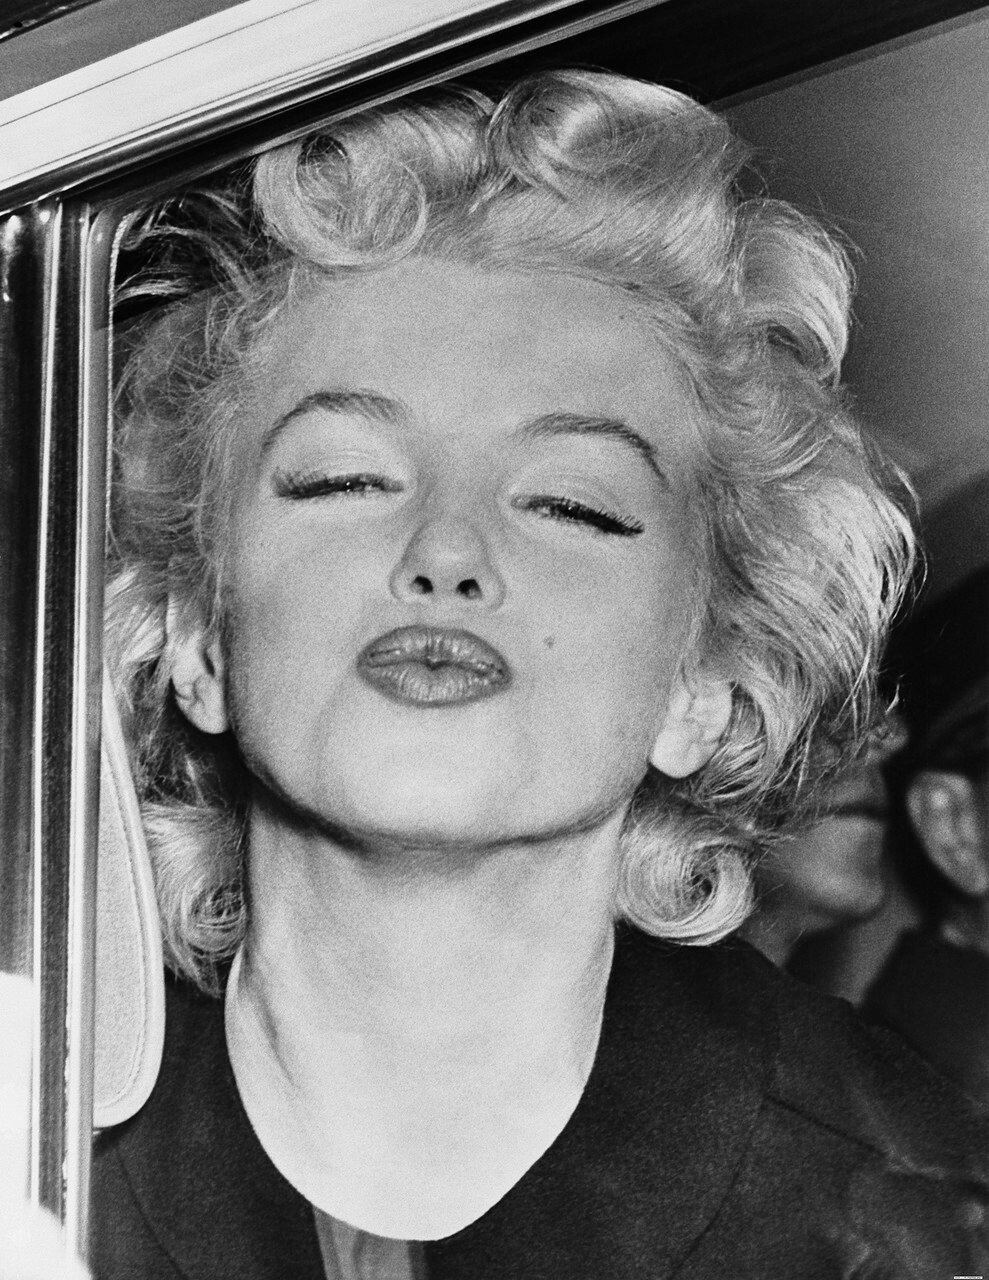 Marilyn Monroe Puckering Lips